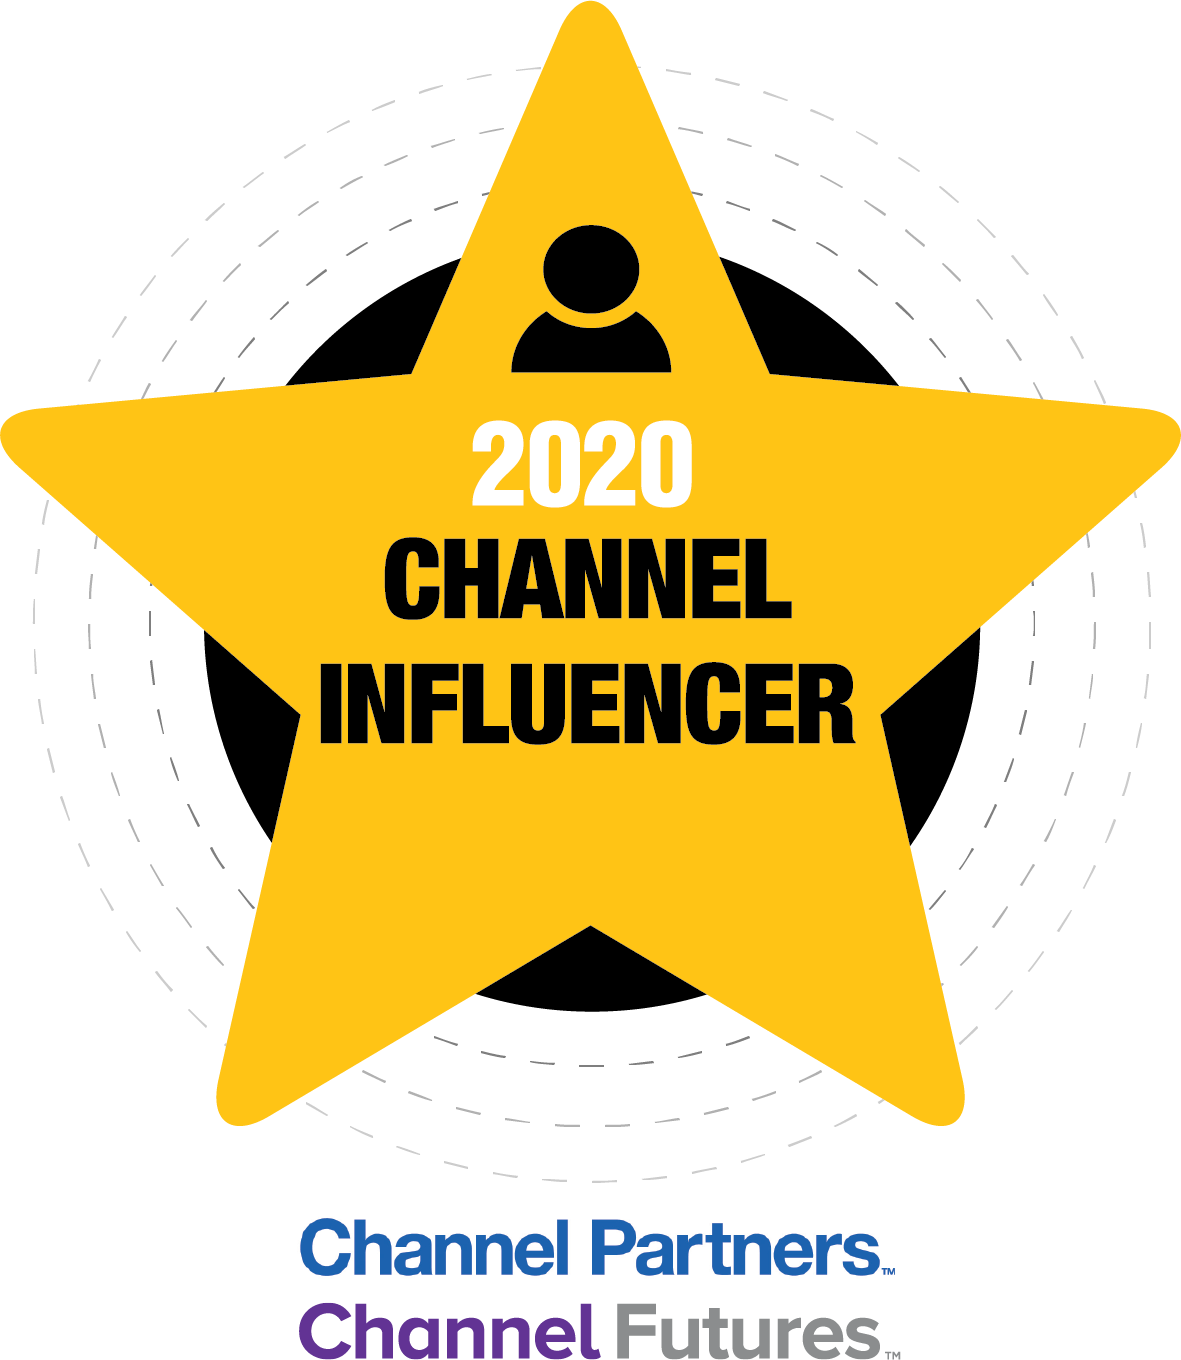 Pax8's Andrew Pryfogle Named 2020 Influencer Award Winner by Channel Partners, Channel Futures Image